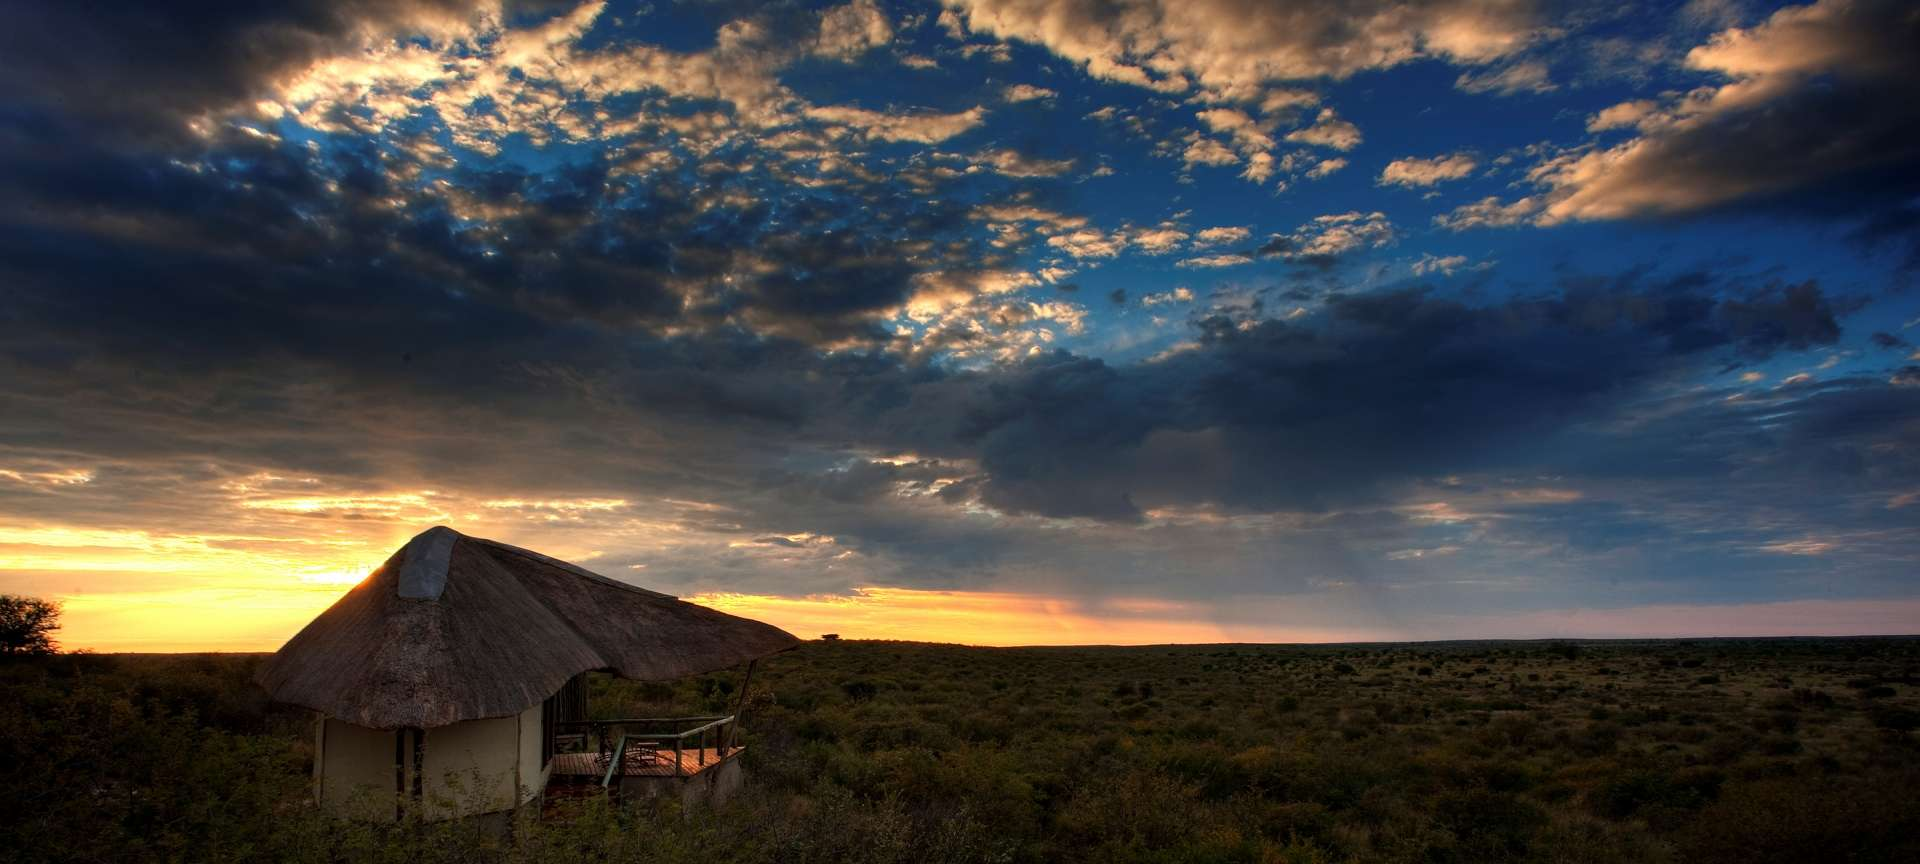 The Kalahari is a mystical attraction filled with life